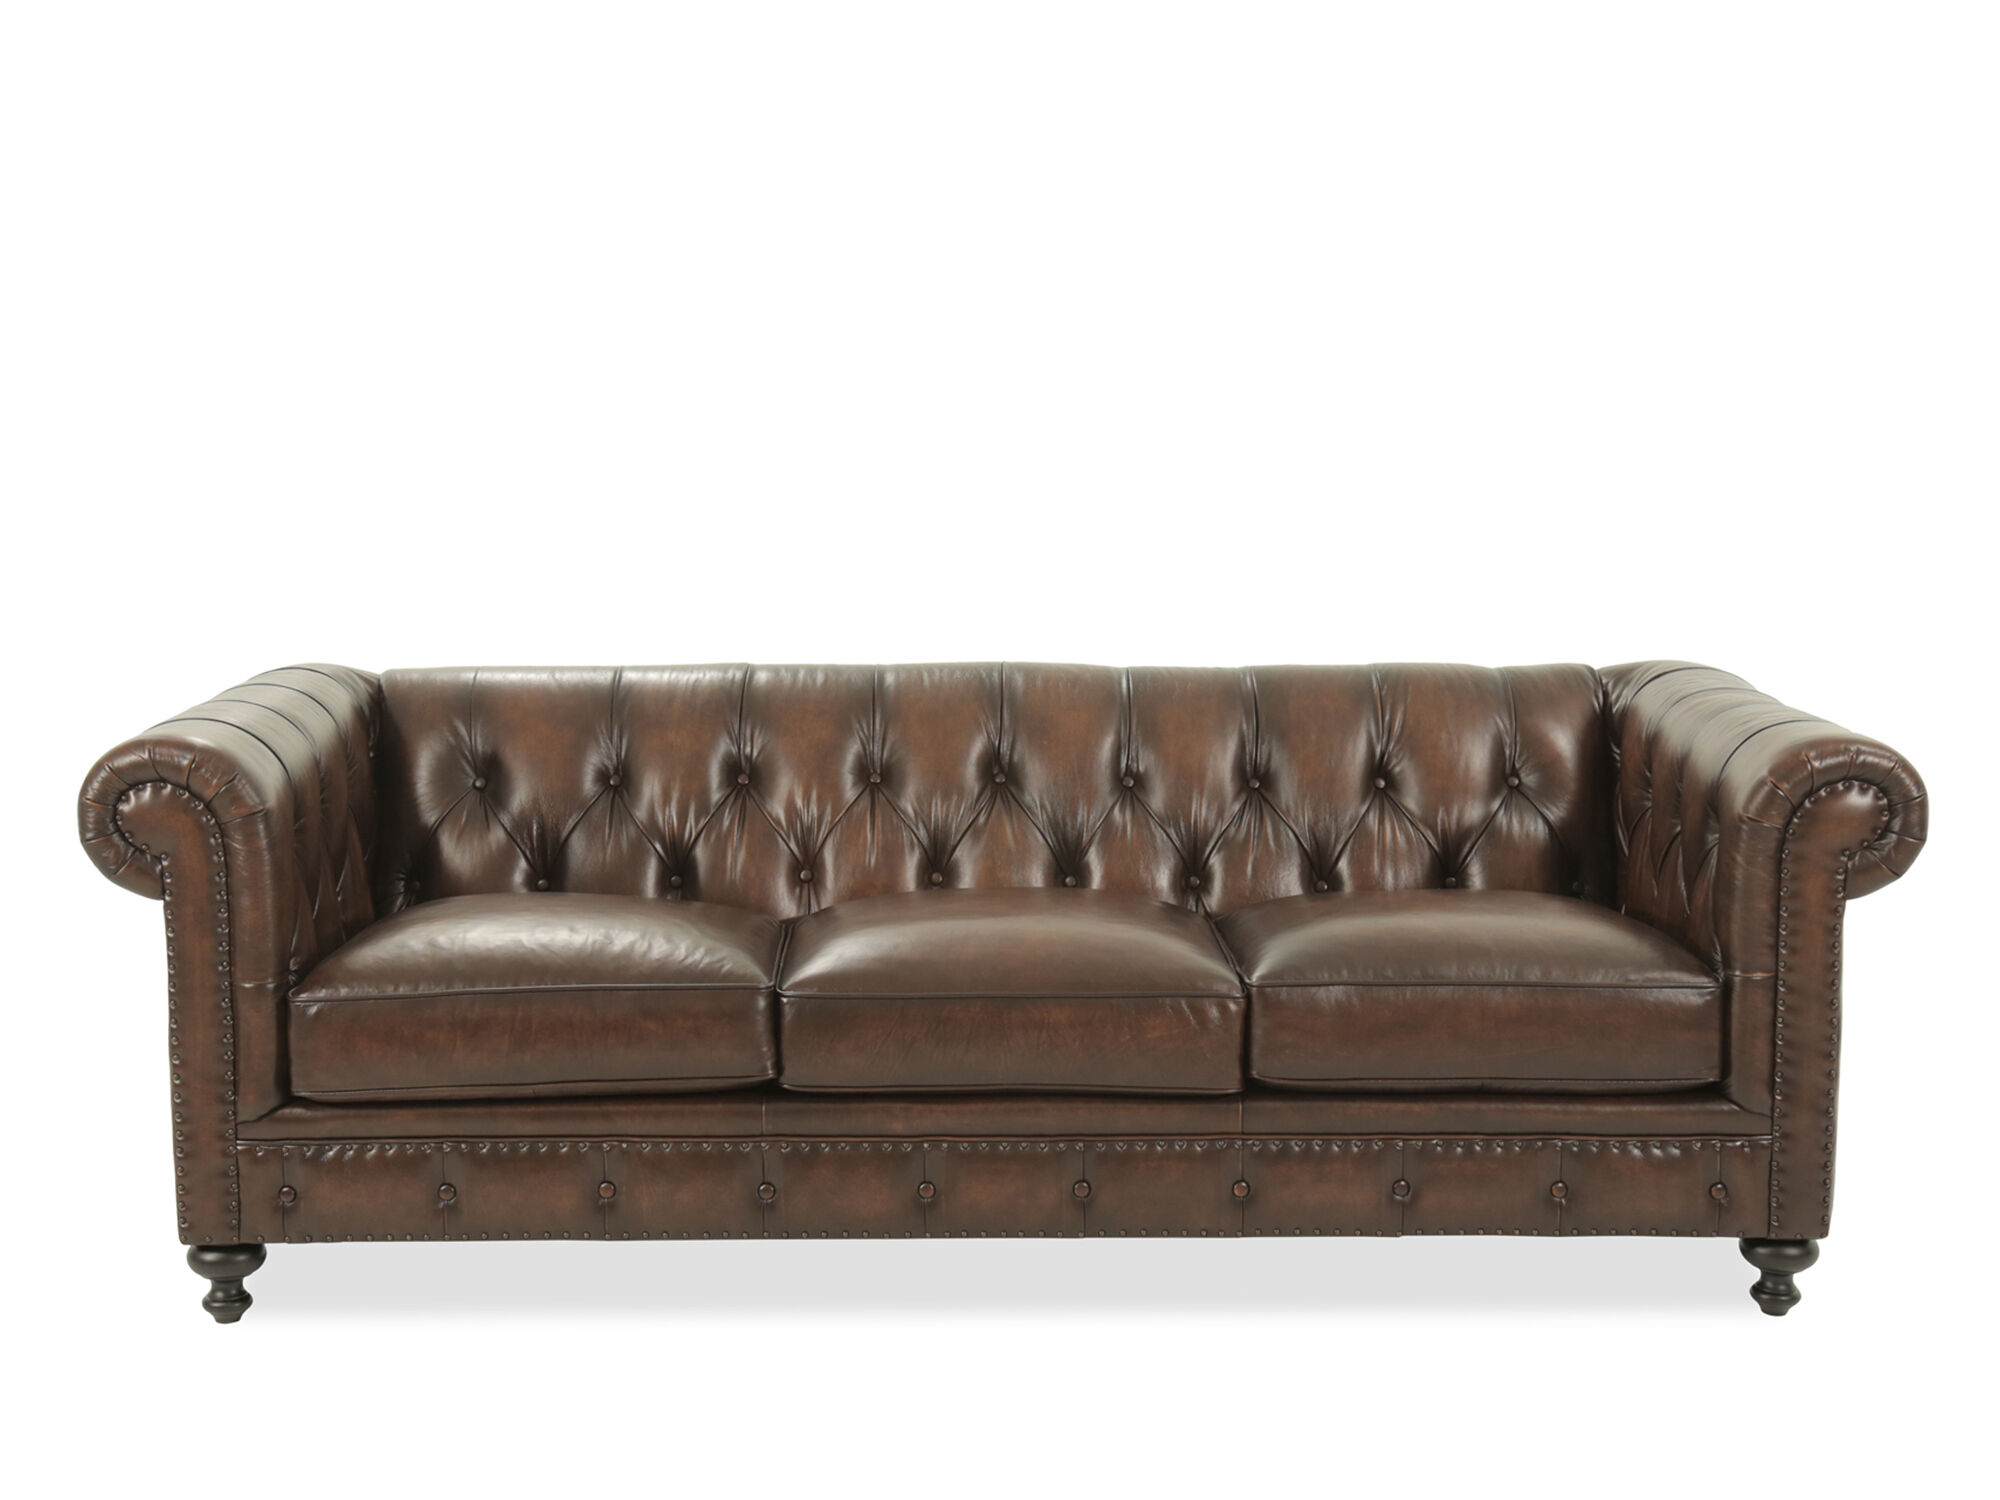 Superbe Images Leather Button Tufted 92.5u0026quot; Sofa In Dark Brown Leather  Button Tufted 92.5u0026quot; Sofa In Dark Brown